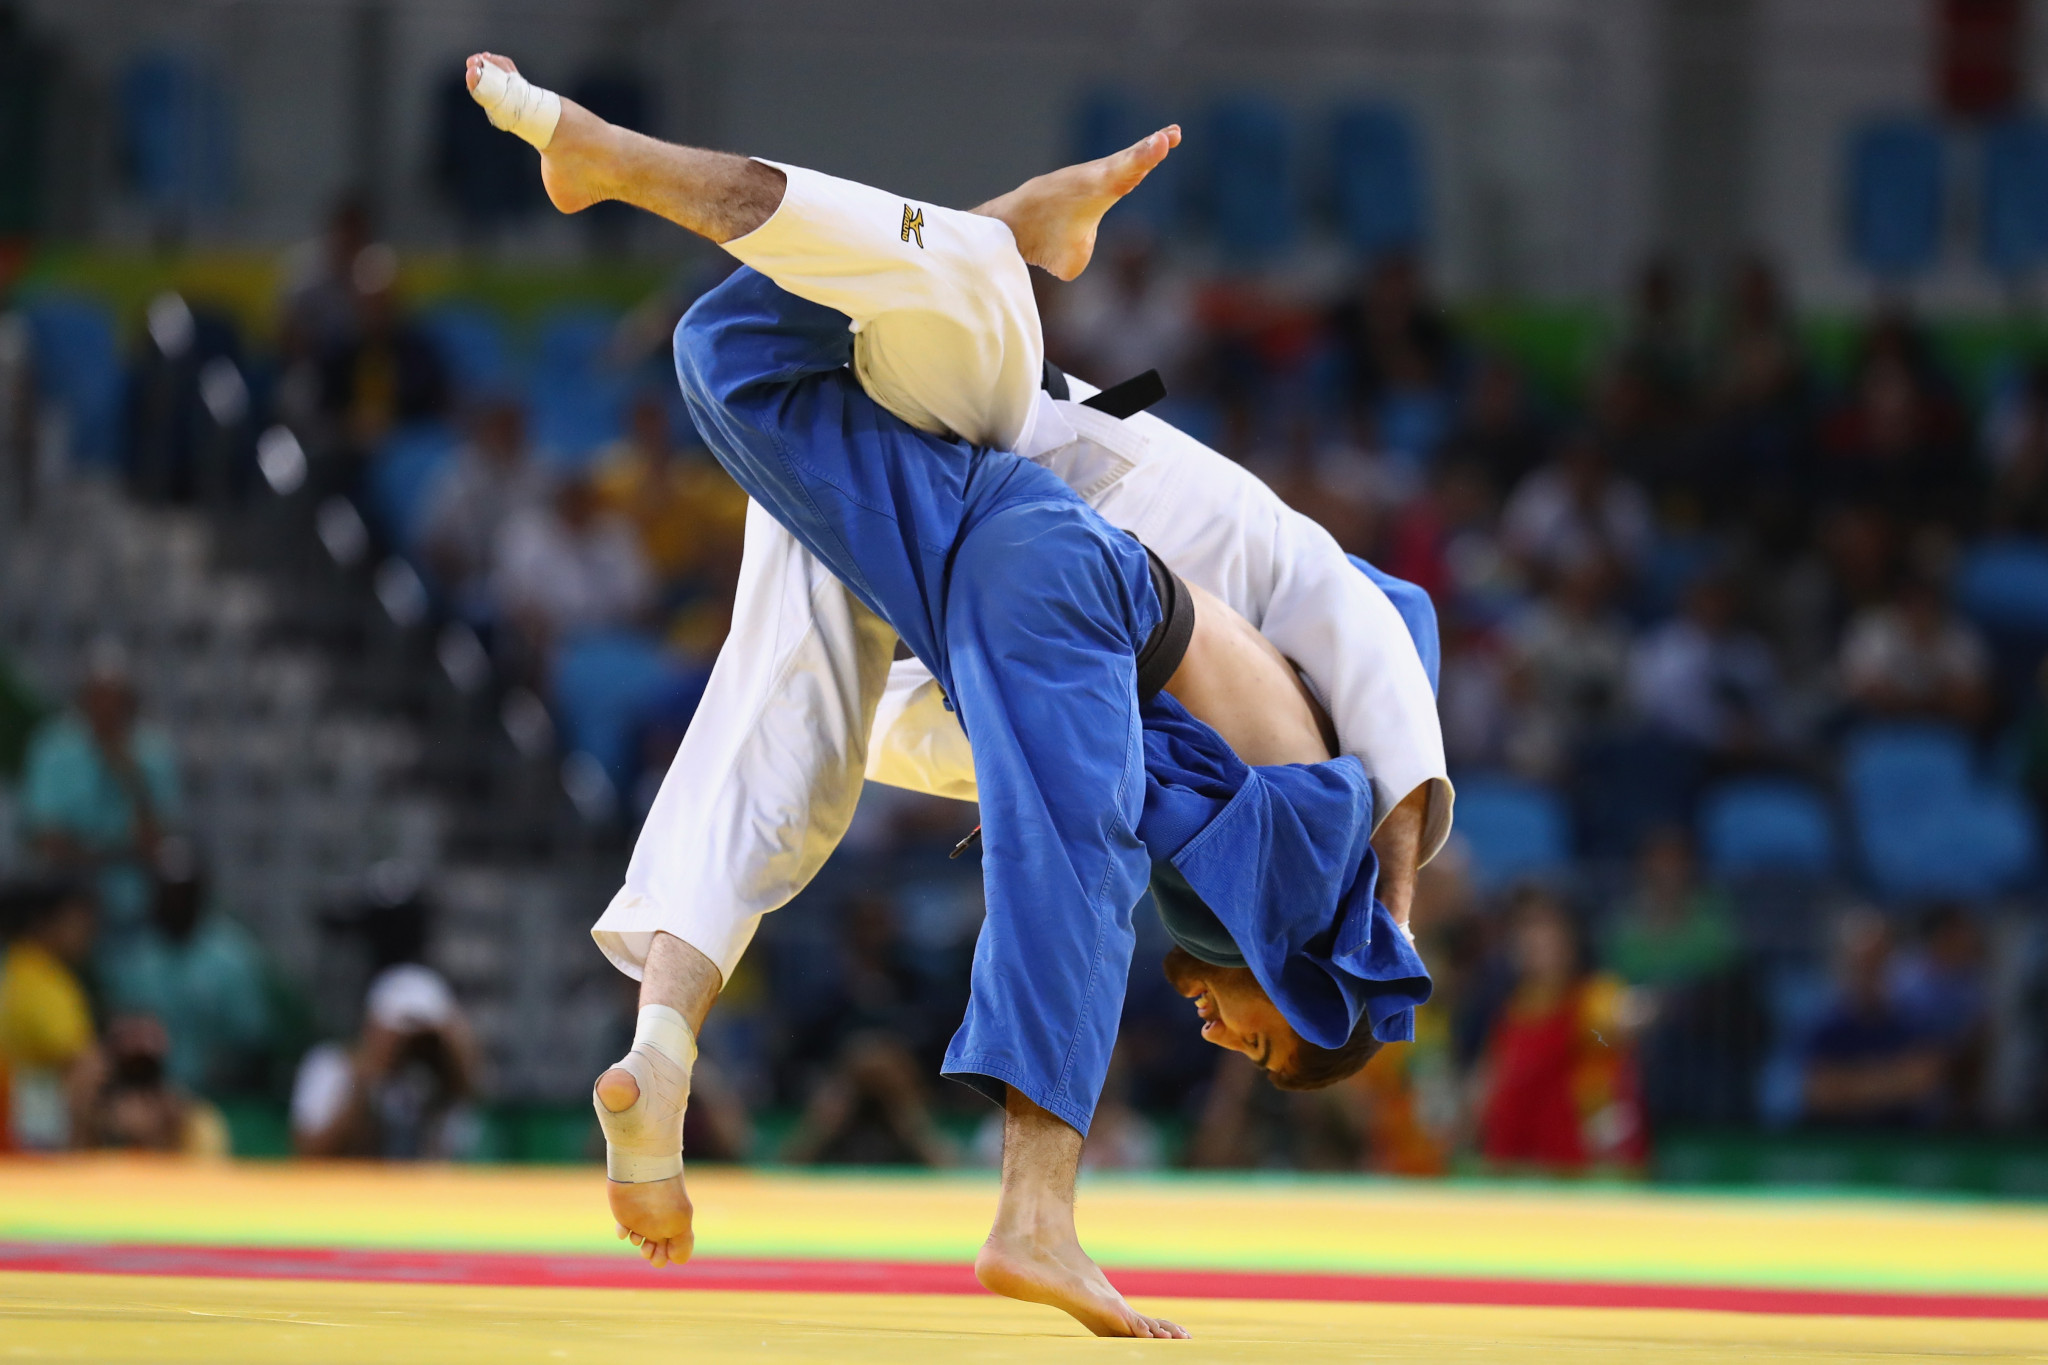 Judo is working towards full resumption following the COVID-19 pandemic ©Getty Images